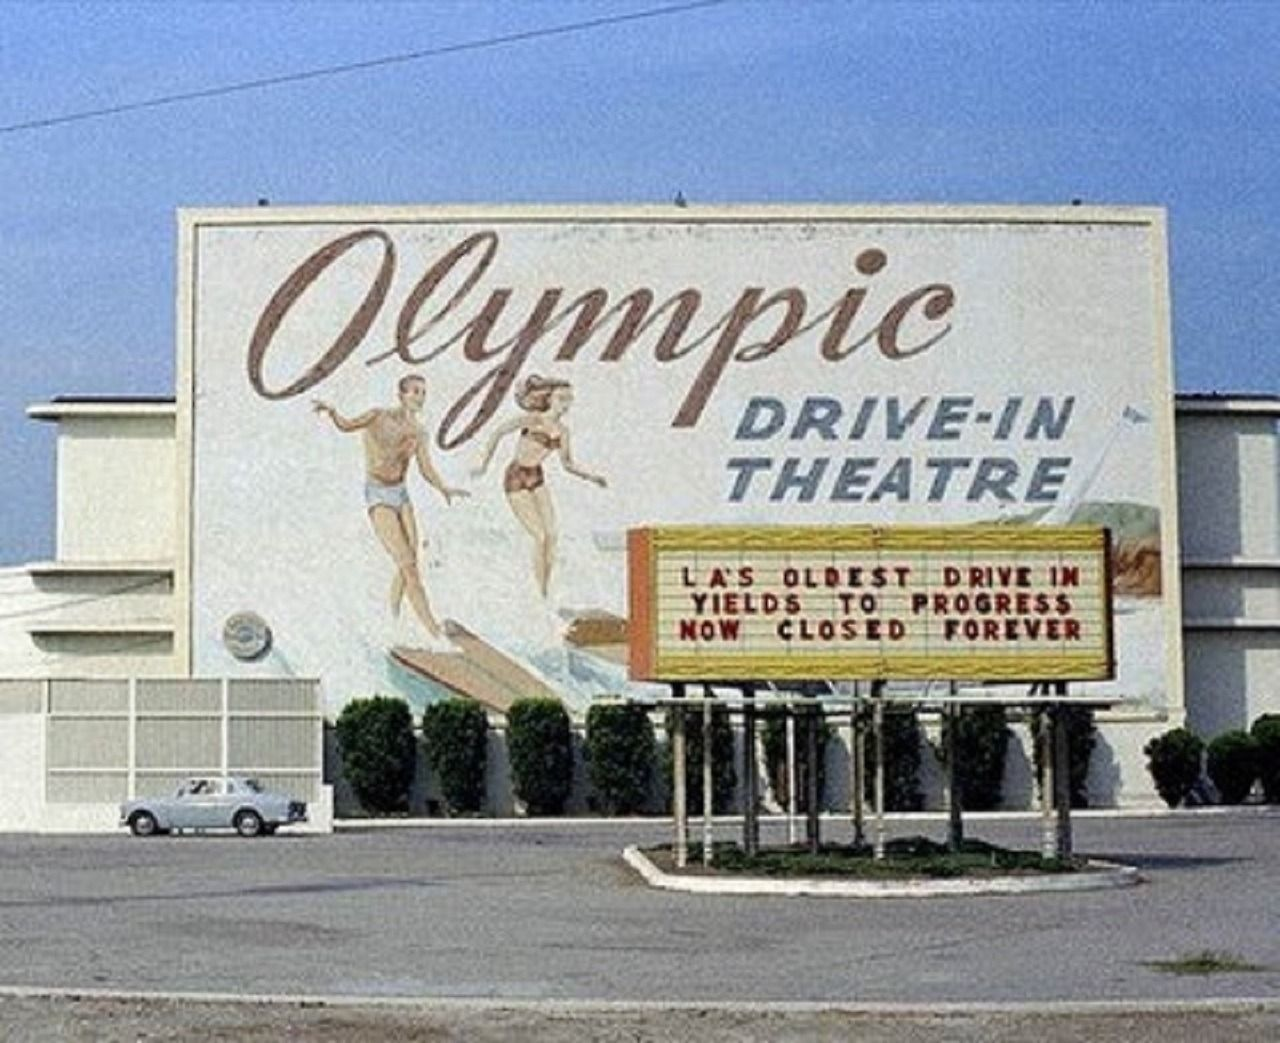 The Olympic DriveIn Theater at Olympic and Bundy in West